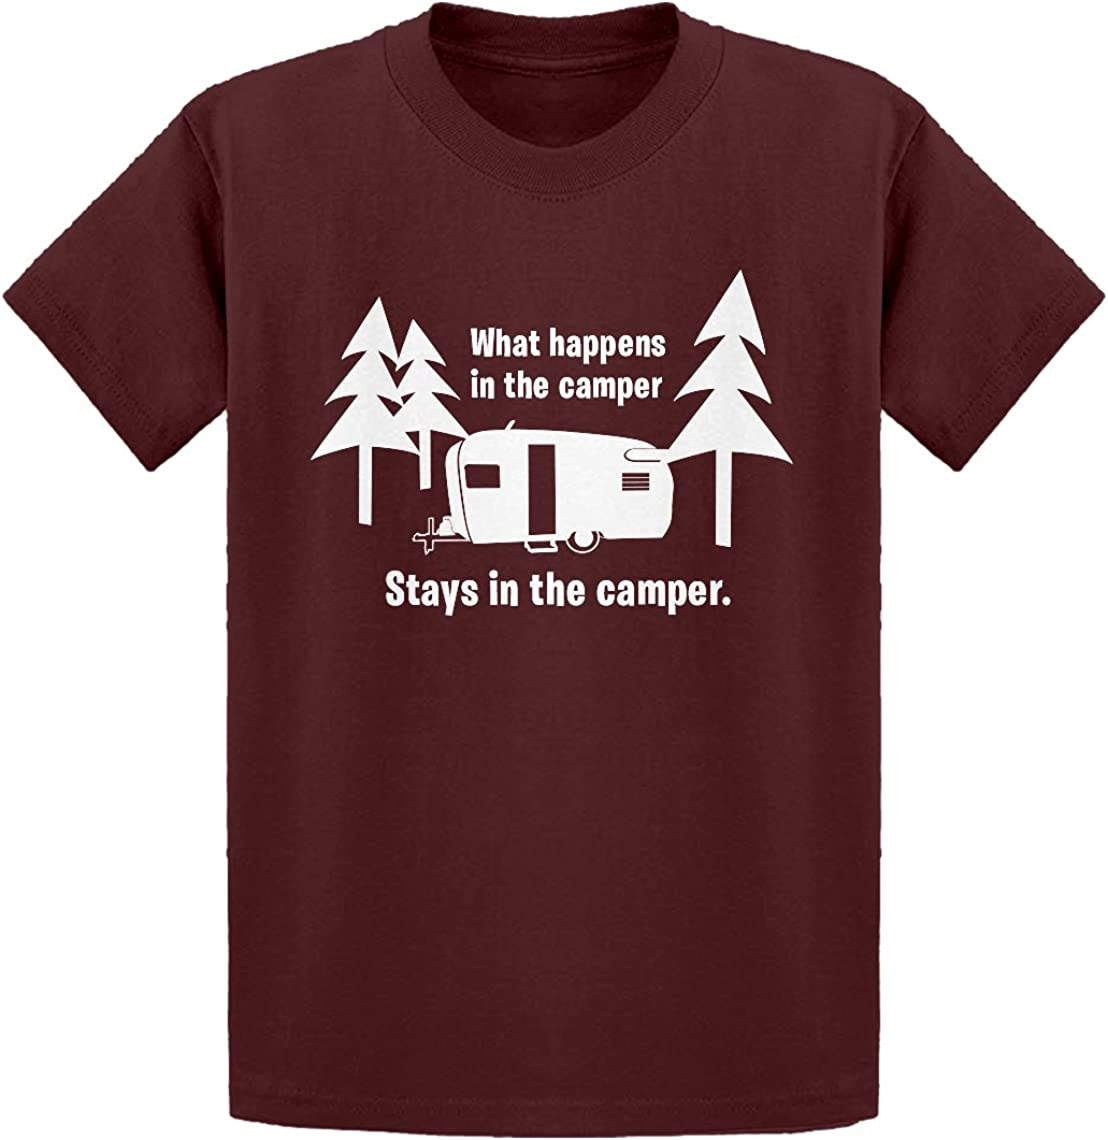 What Happens in The Camper Kids T-Shirt